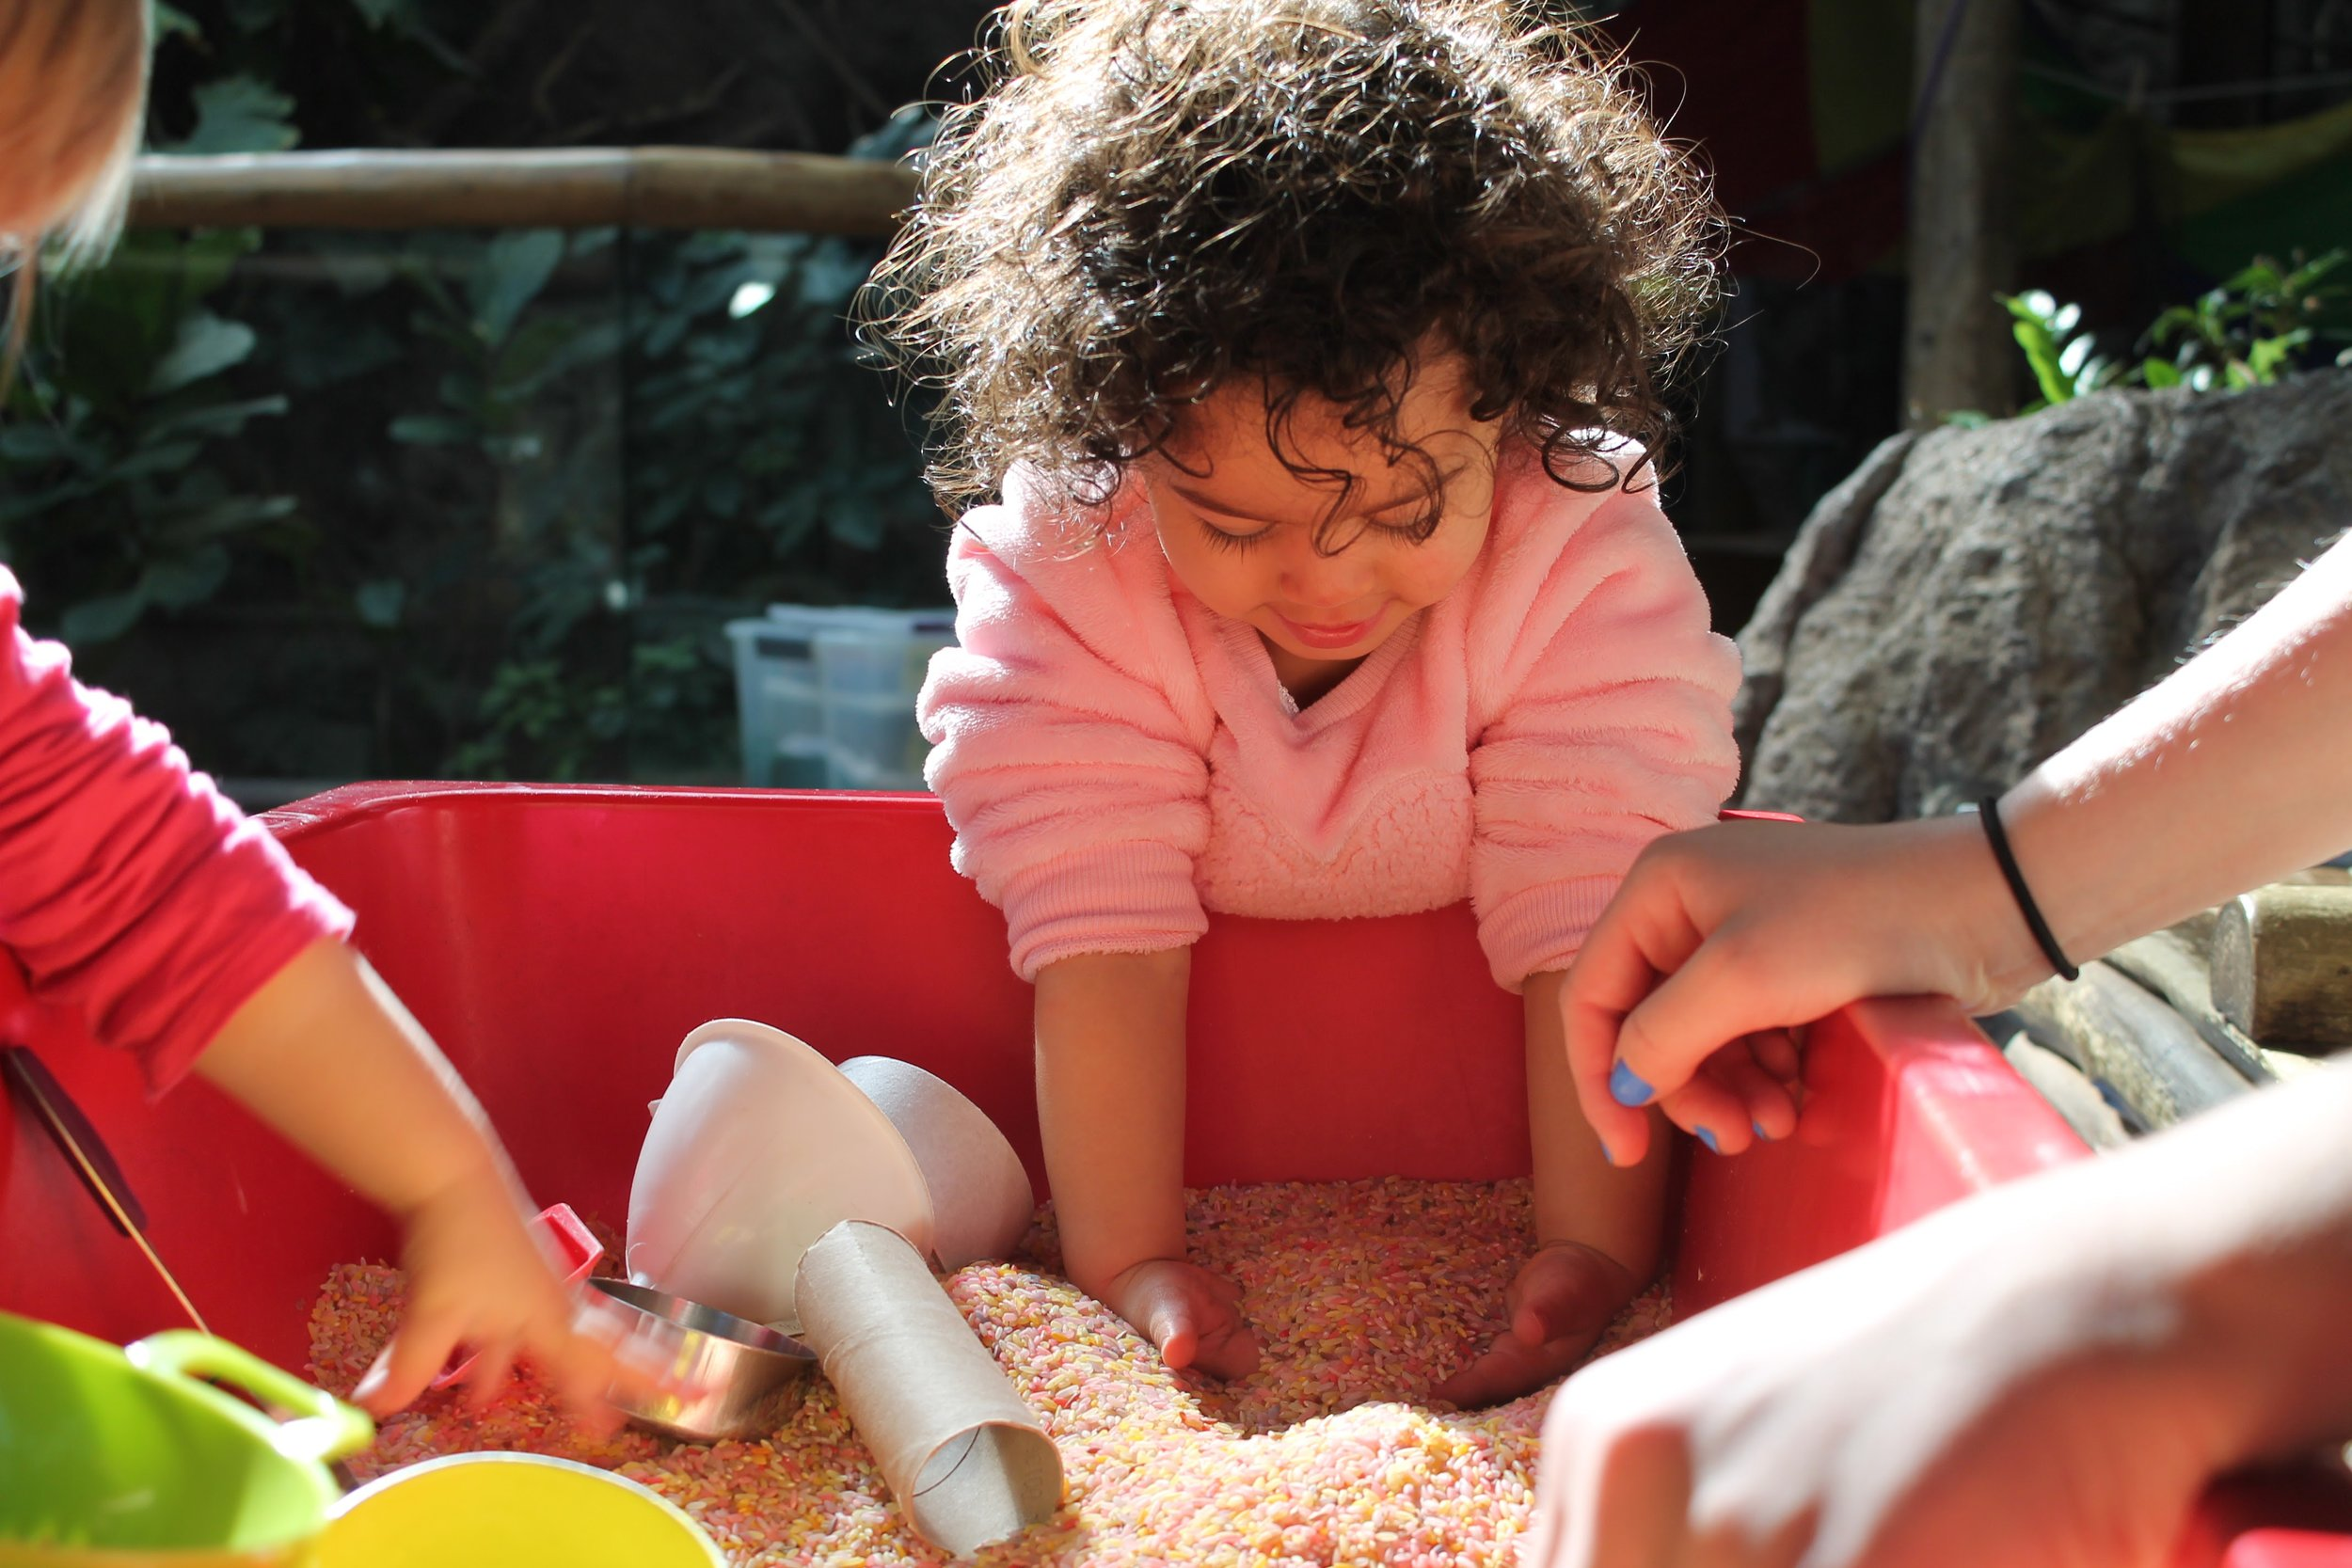 Digging, burrowing and scooping in the sensory bin allowed toddlers to touch and explore new materials